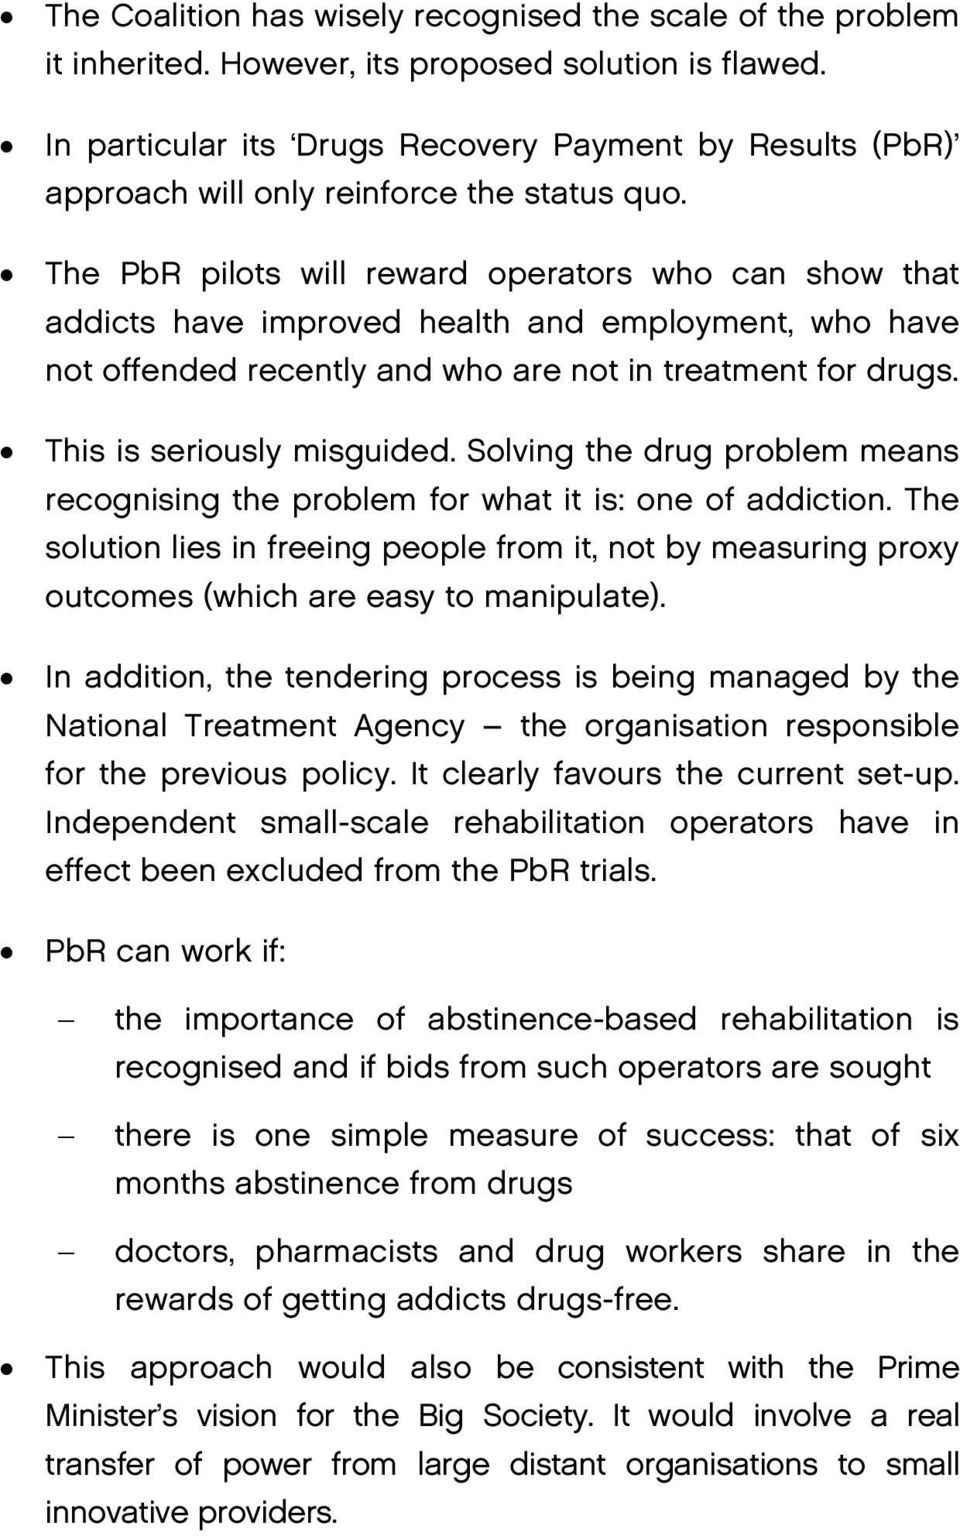 The PbR pilots will reward operators who can show that addicts have improved health and employment, who have not offended recently and who are not in treatment for drugs. This is seriously misguided.